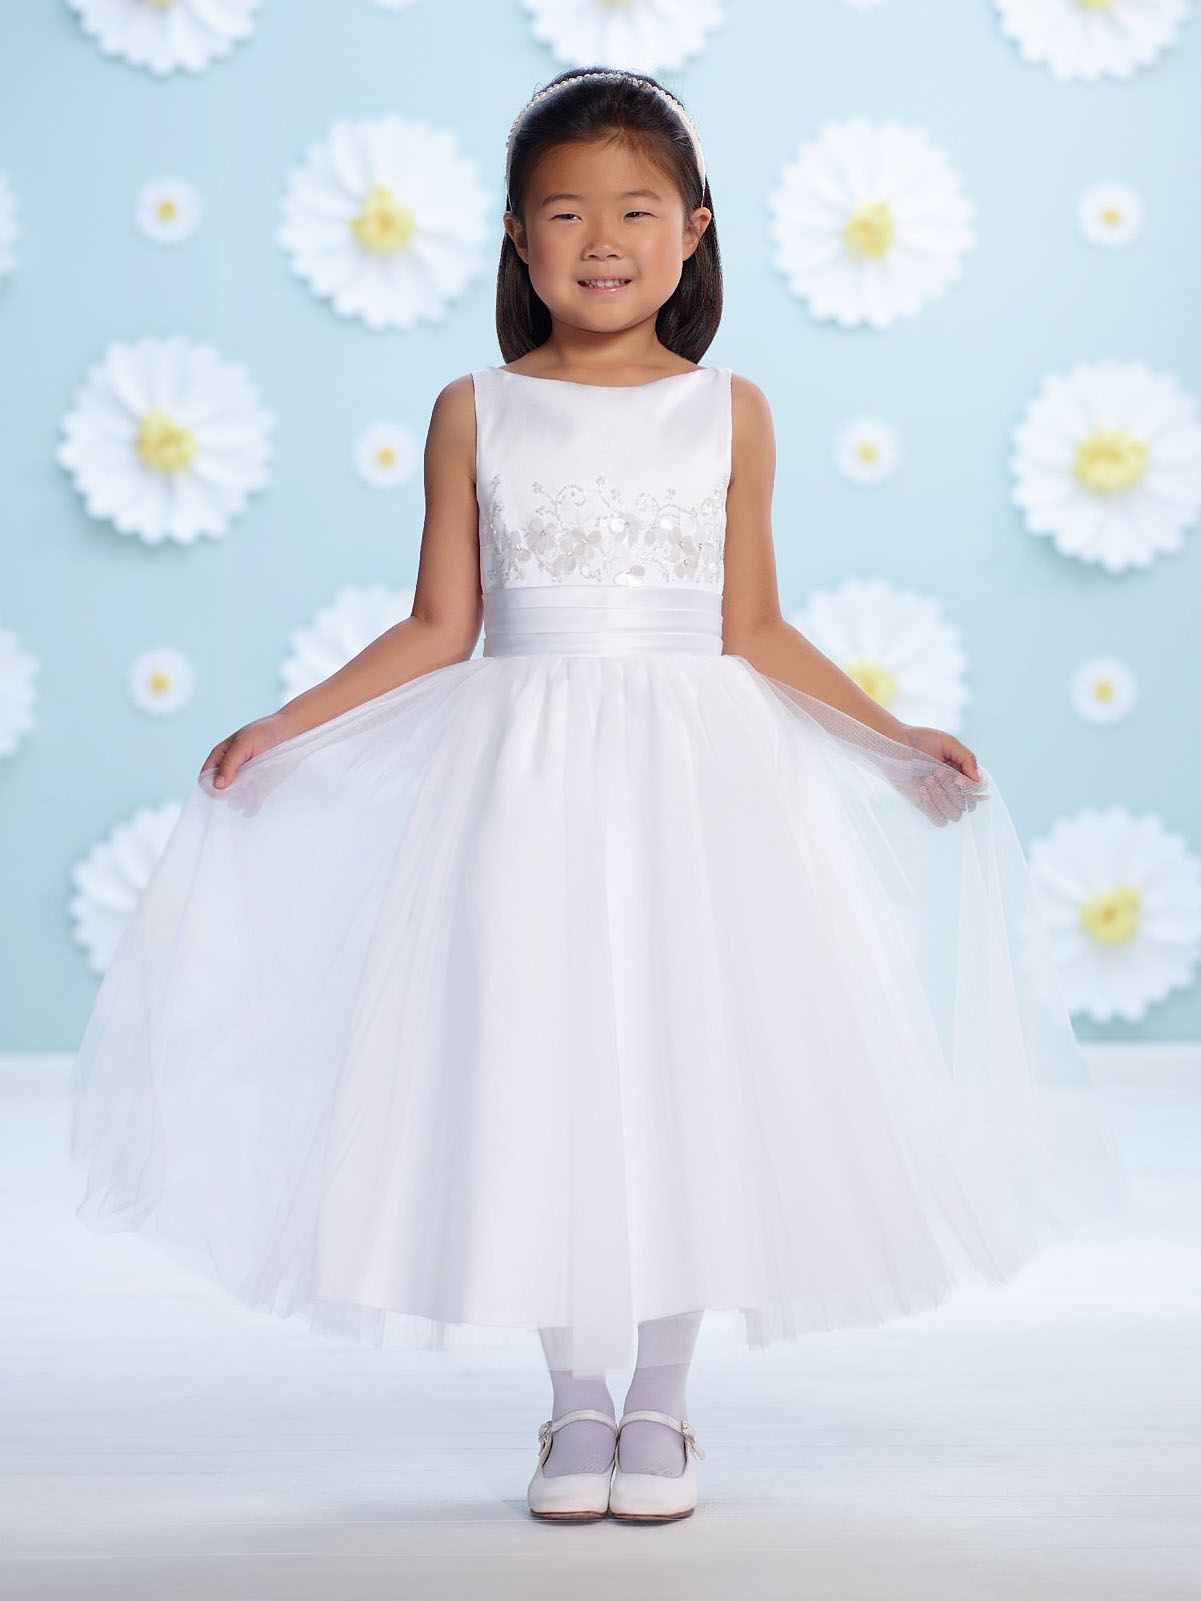 Joan calabrese white satin bateau neck flower girl dress white satin bateau neck flower girl dress click to enlarge mightylinksfo